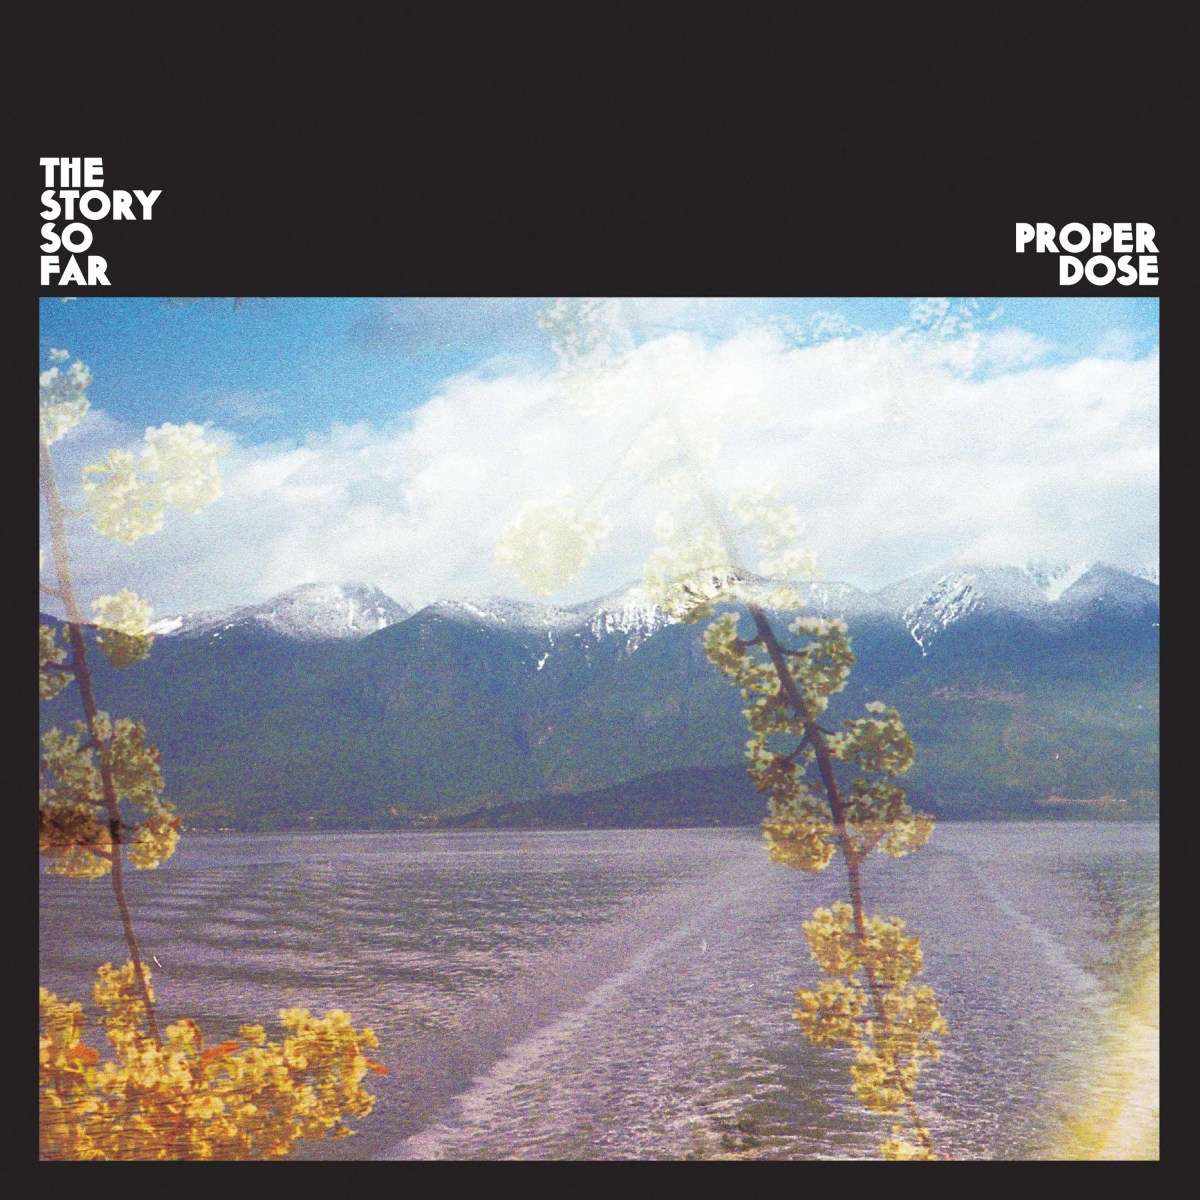 The Story So Far - Proper Dose (Album Review)